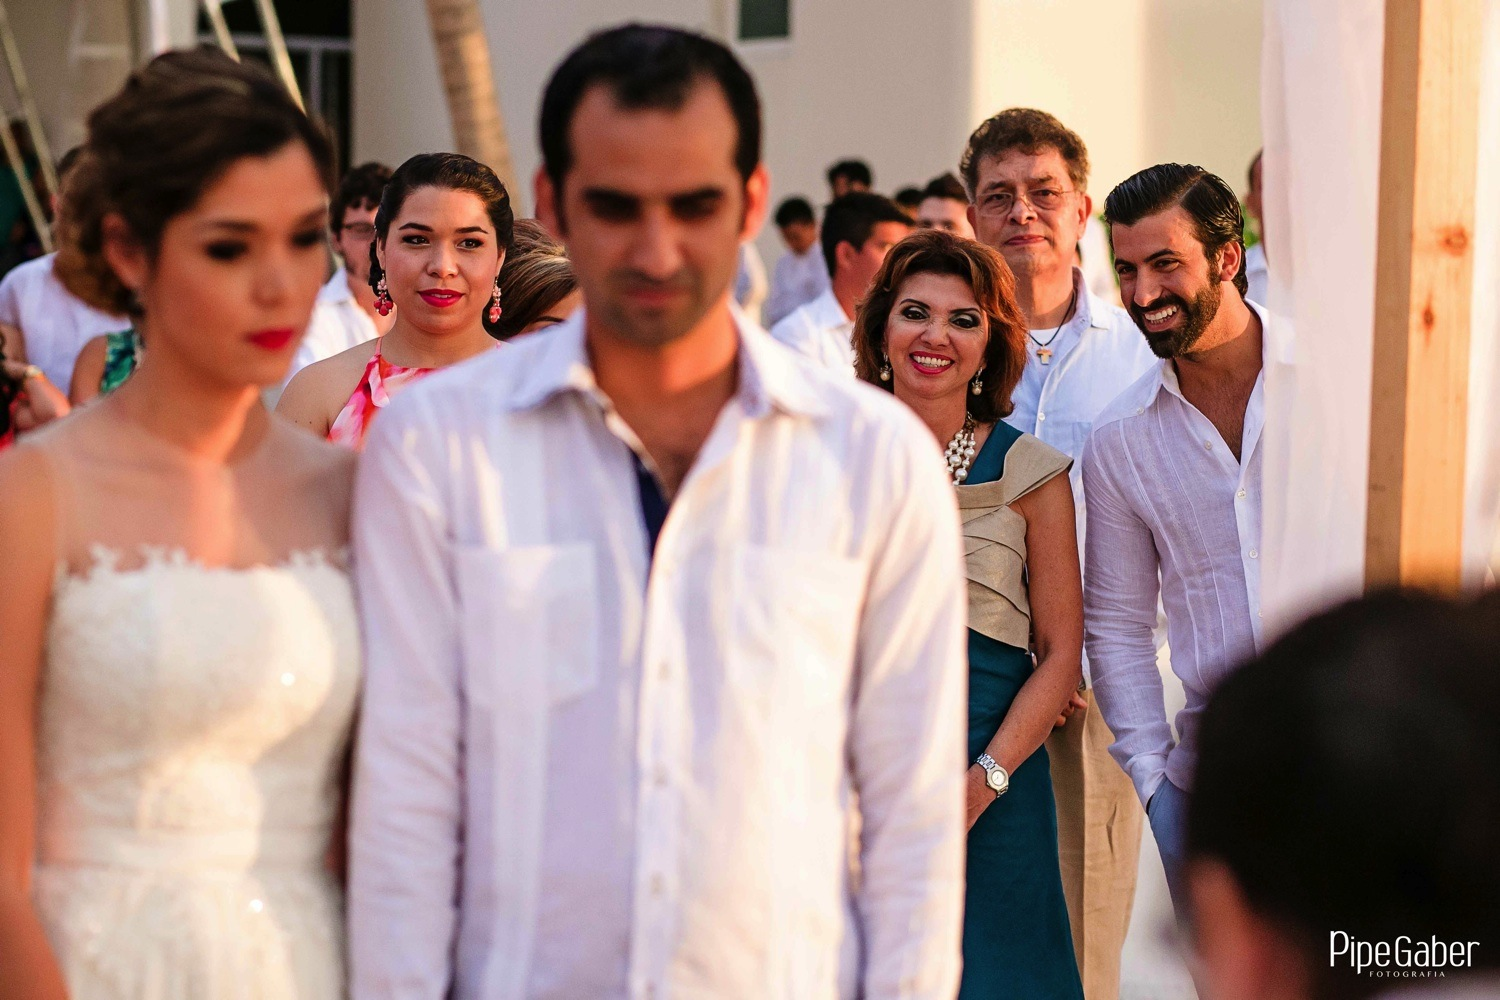 Pipe_Gaber_Riviera_Maya_Cancun_Photographer_Destination_fotografo_Bodas_Mexico_Merida_yucatan_Uaymitun_Weddin_Photography 05.JPG